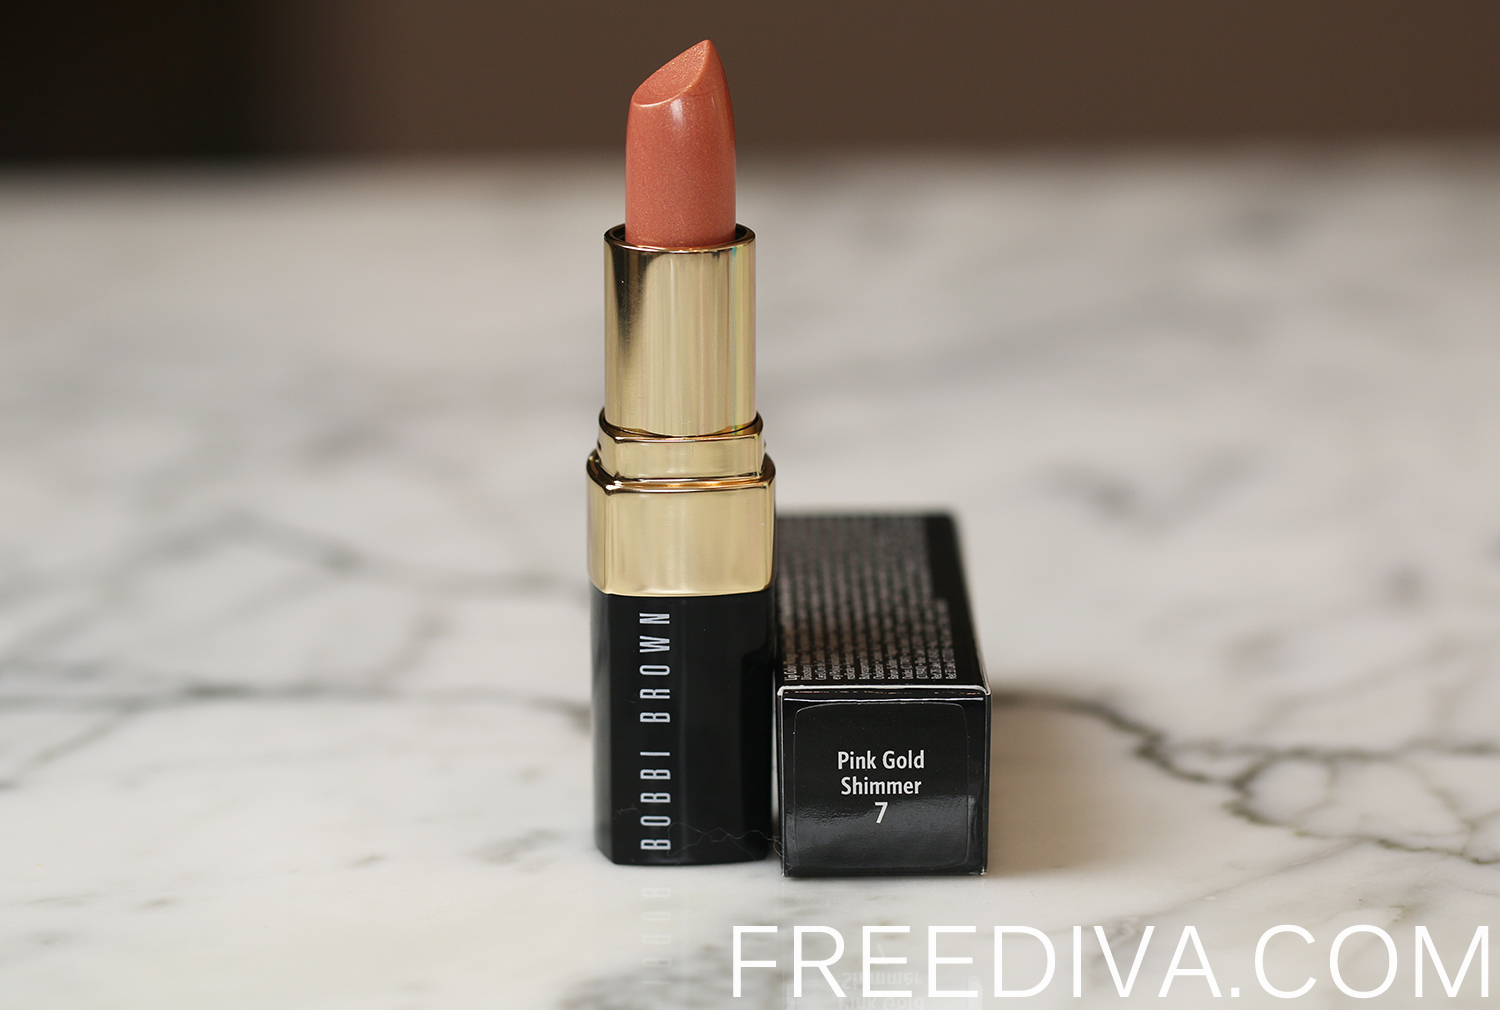 Bobbi Brown Shimmer Finish Lip Color Pink Gold Shimmer Sandy Nudes Collection